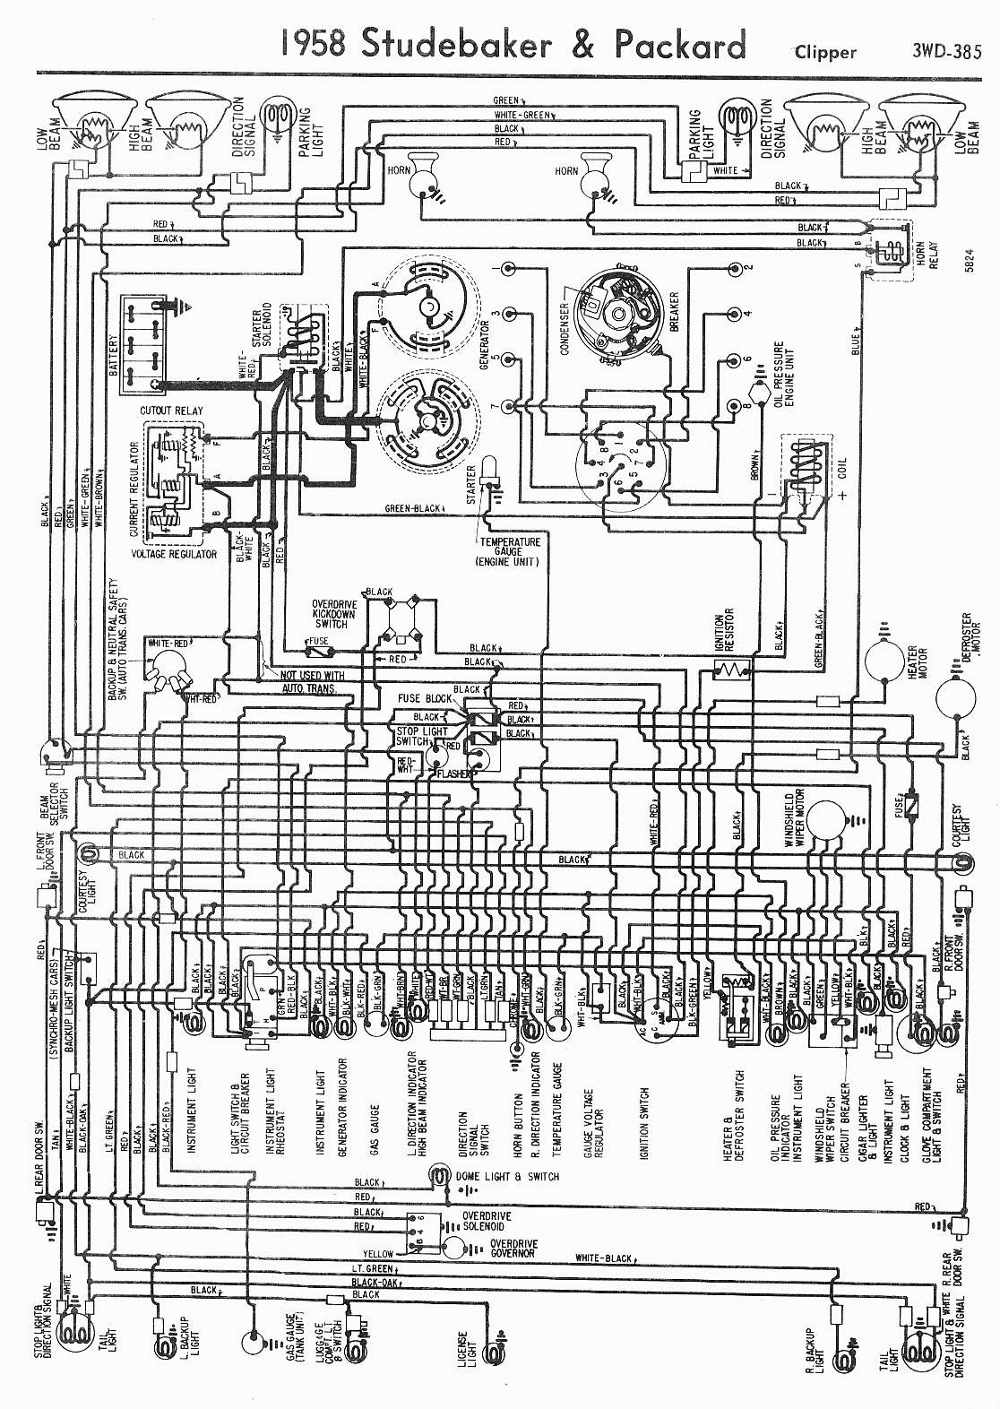 Packardcar Wiring Diagram Wire Data Schema Circuits Gt Tv Signal Amplifier Circuit With Bfr90 Transistor L37522 Packard Car Manuals Diagrams Pdf Fault Codes Rh Automotive Net Hvac Basic Electrical Schematic